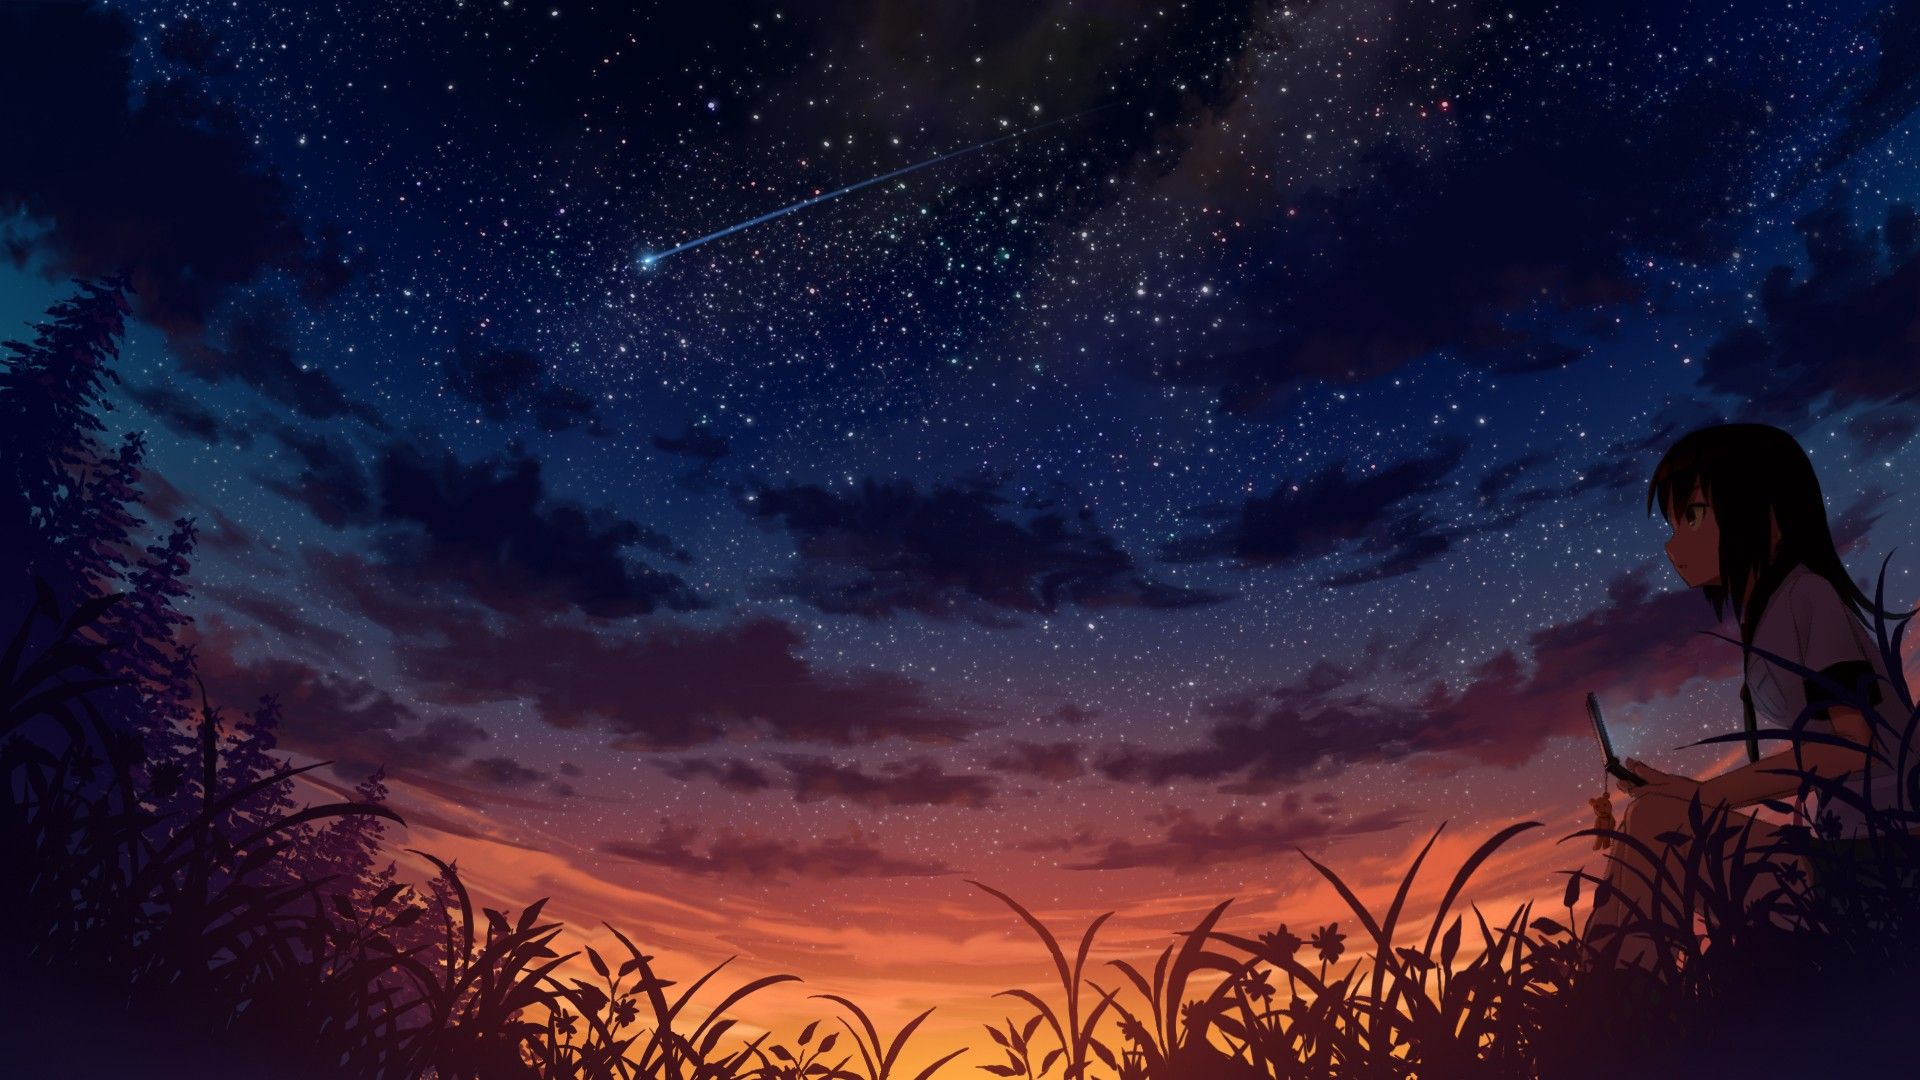 Anime Landscape Stars Sky Anime Girls Clouds Sunset Grass Trees School Uniform Wallpaper No 356 Sky Anime Scenery Wallpaper Anime Scenery